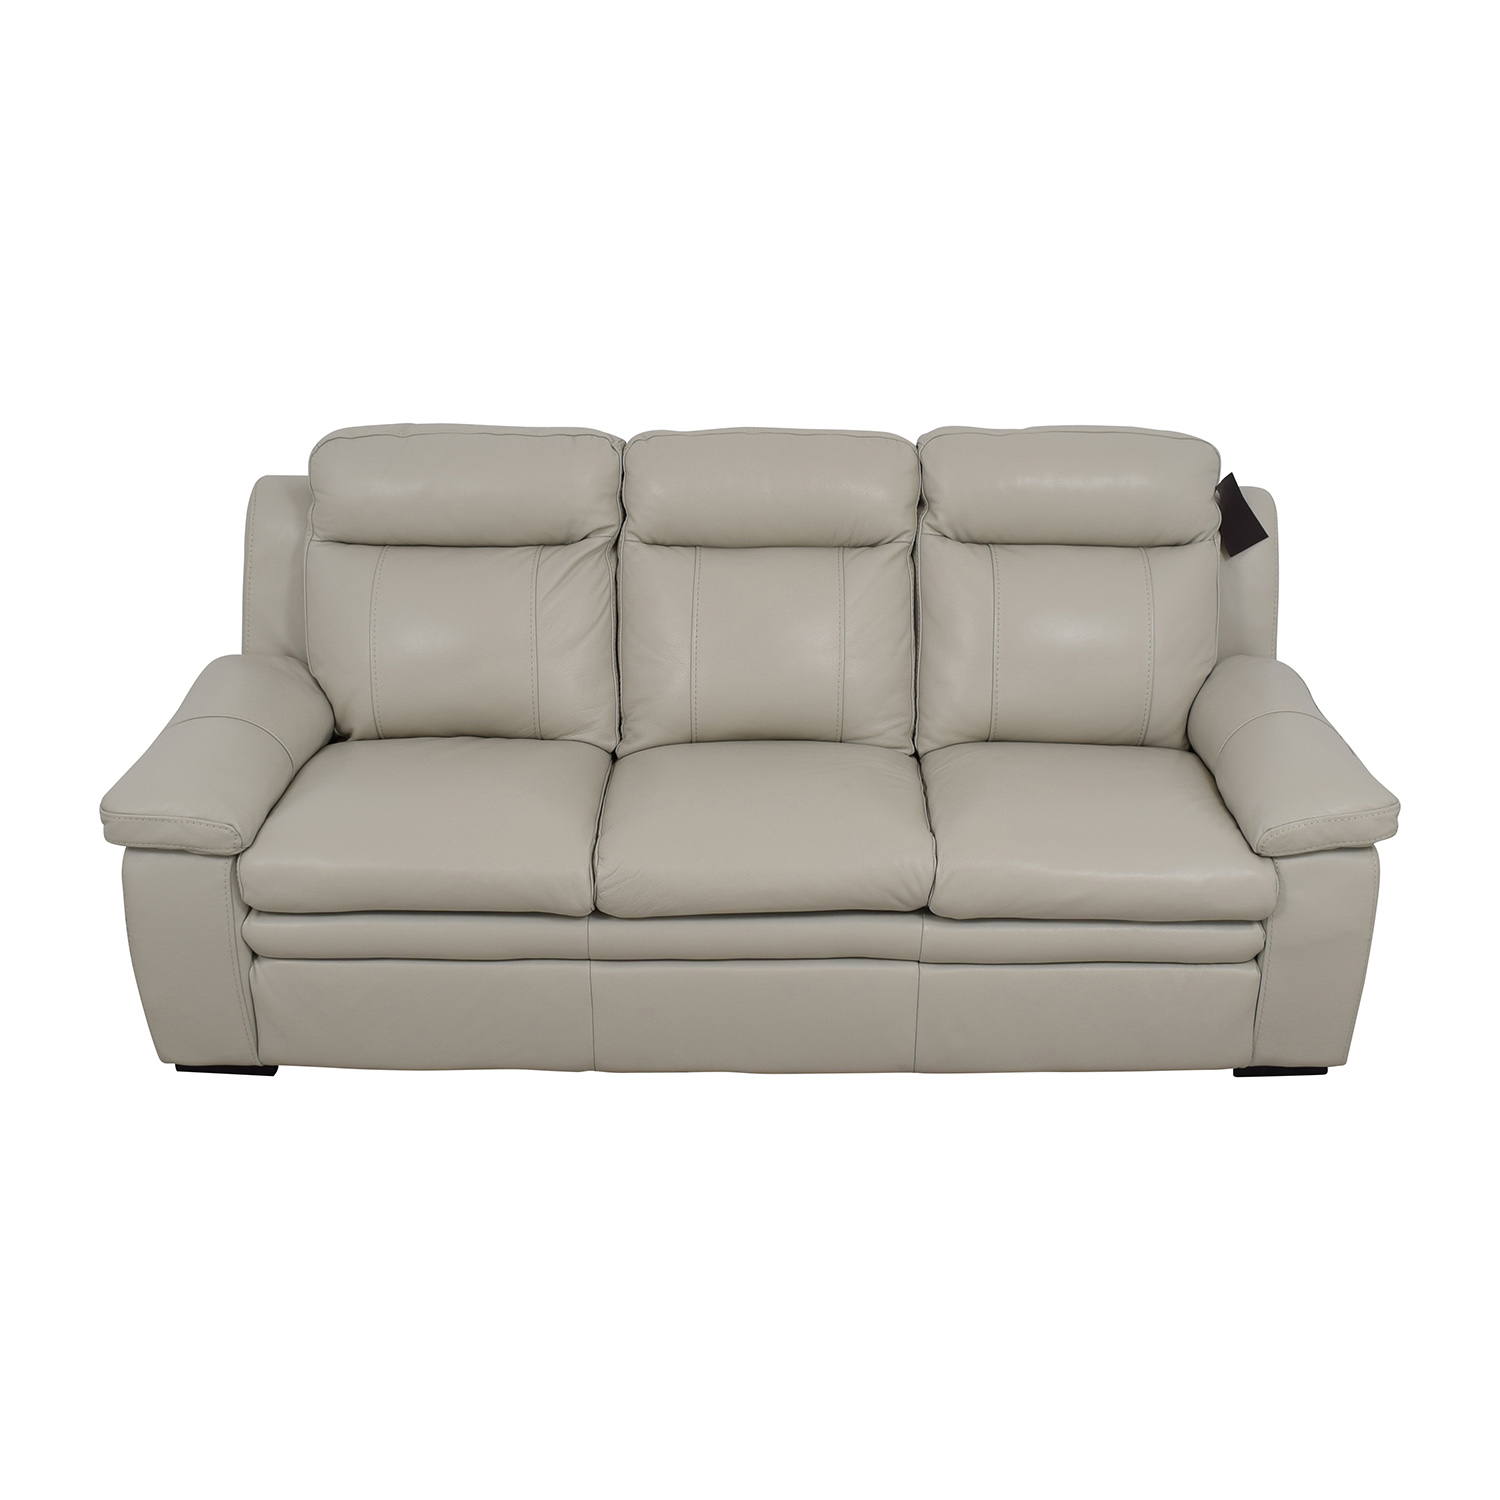 Used Sofas Online Used Sofa For Rosiesultan Thesofa